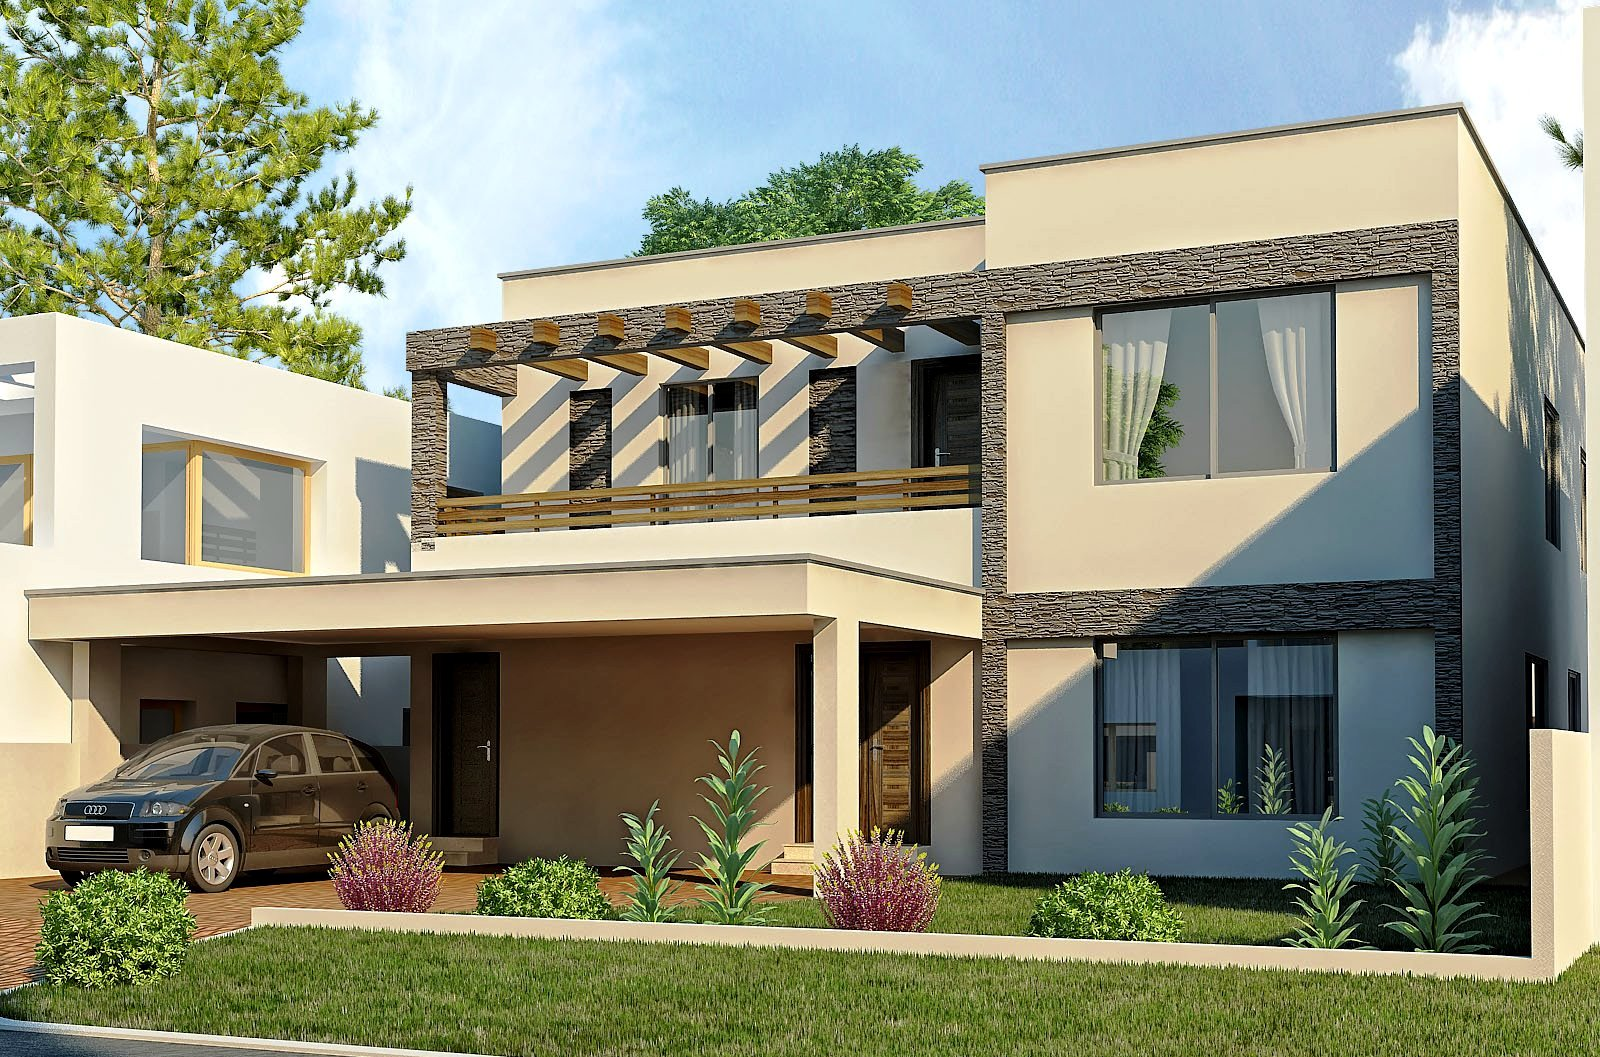 Home design exterior modern home exteriors for Home design exterior ideas in india